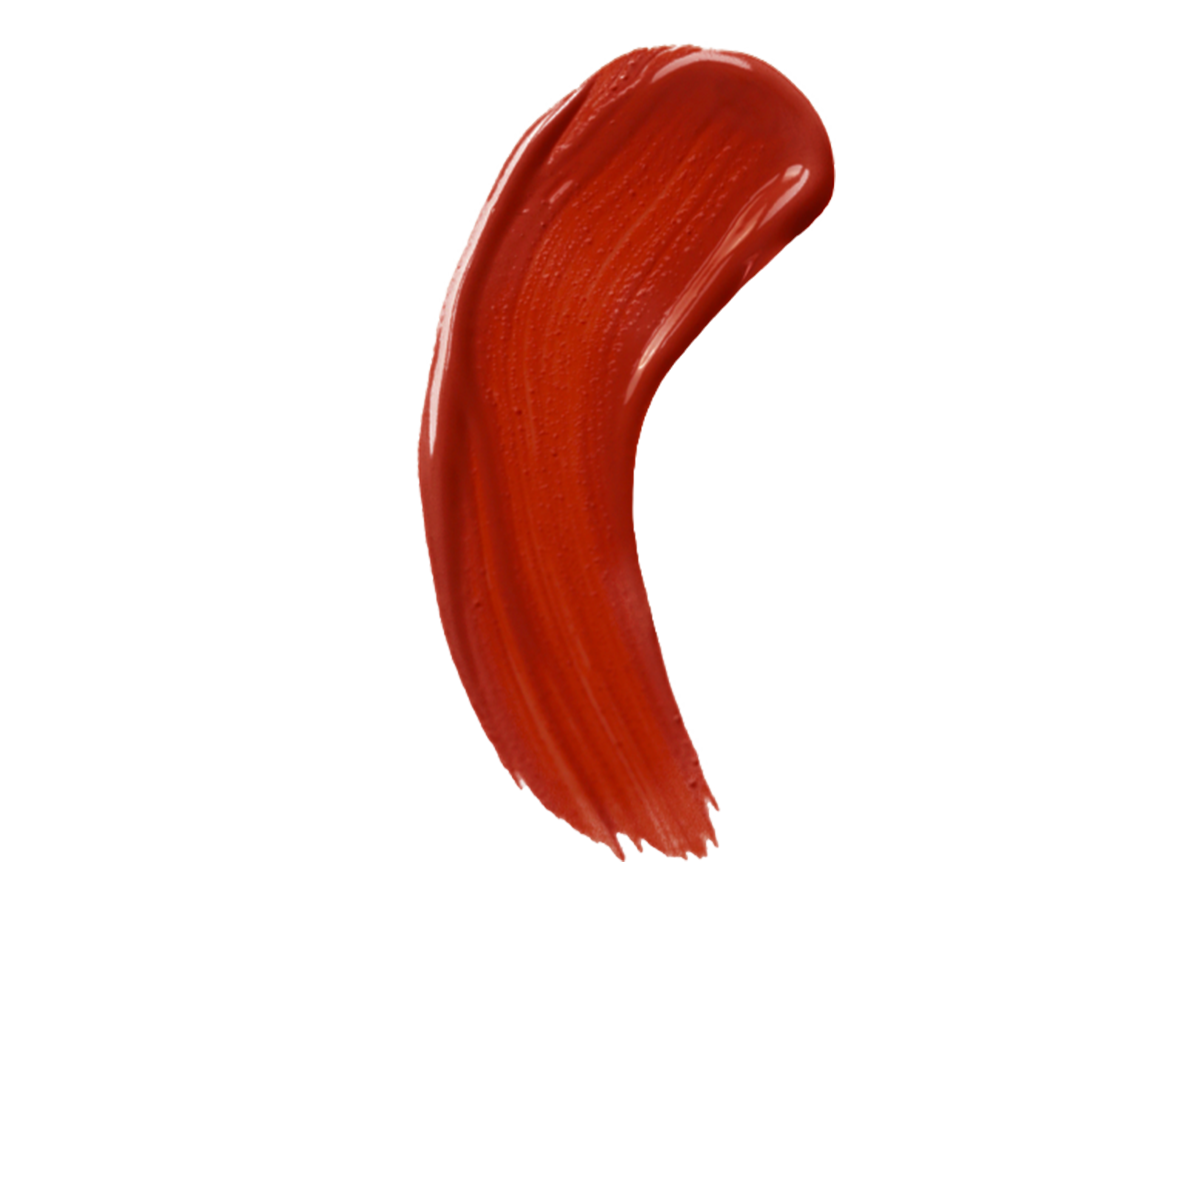 DOUCCE Luscius Lip Stain Colors 617